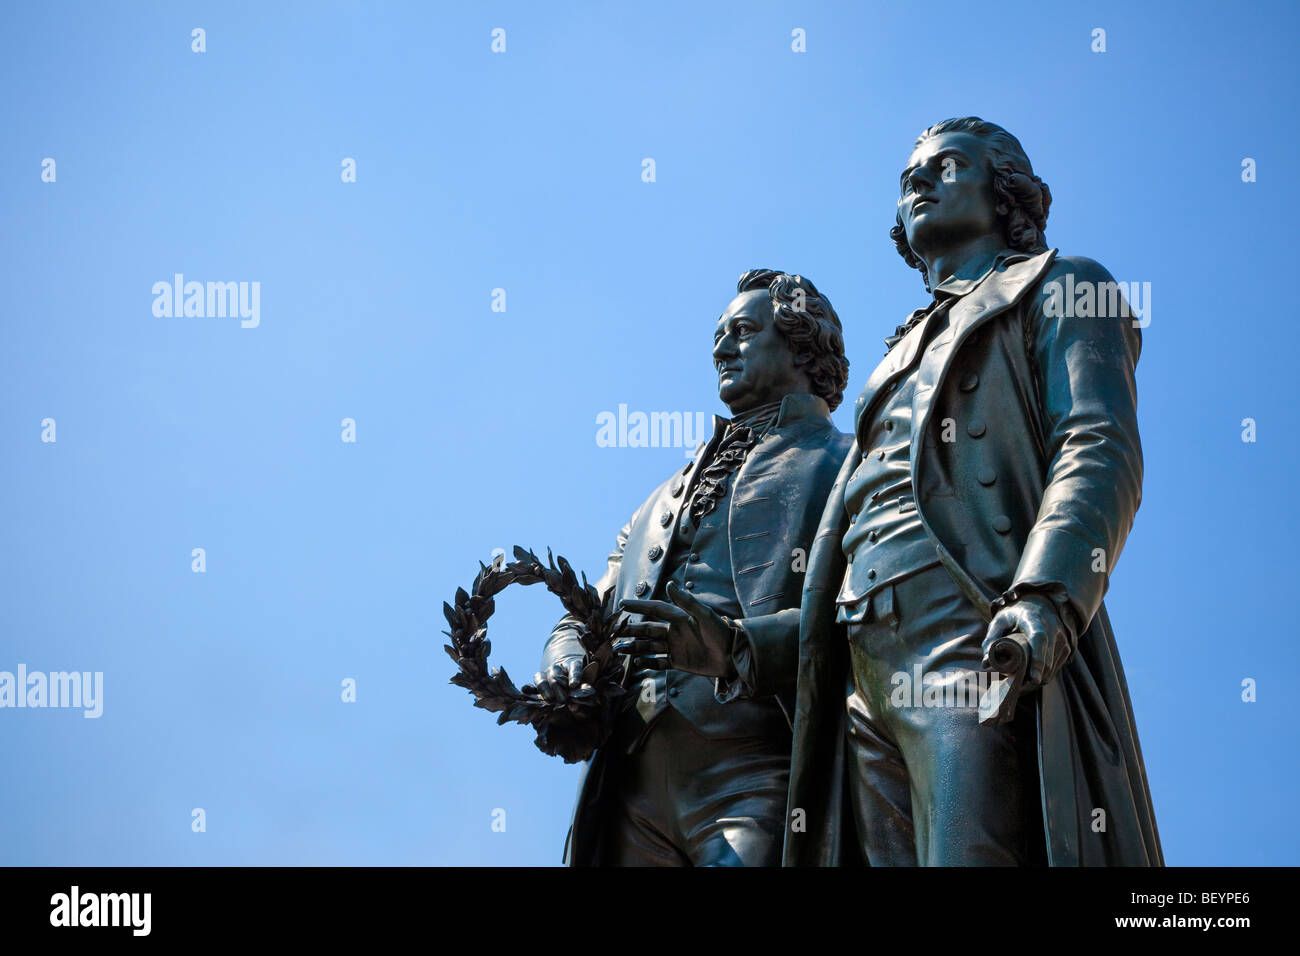 Goethe and Schiller statue against blue sky outside the German National Theatre Weimar Germany Europe - Stock Image